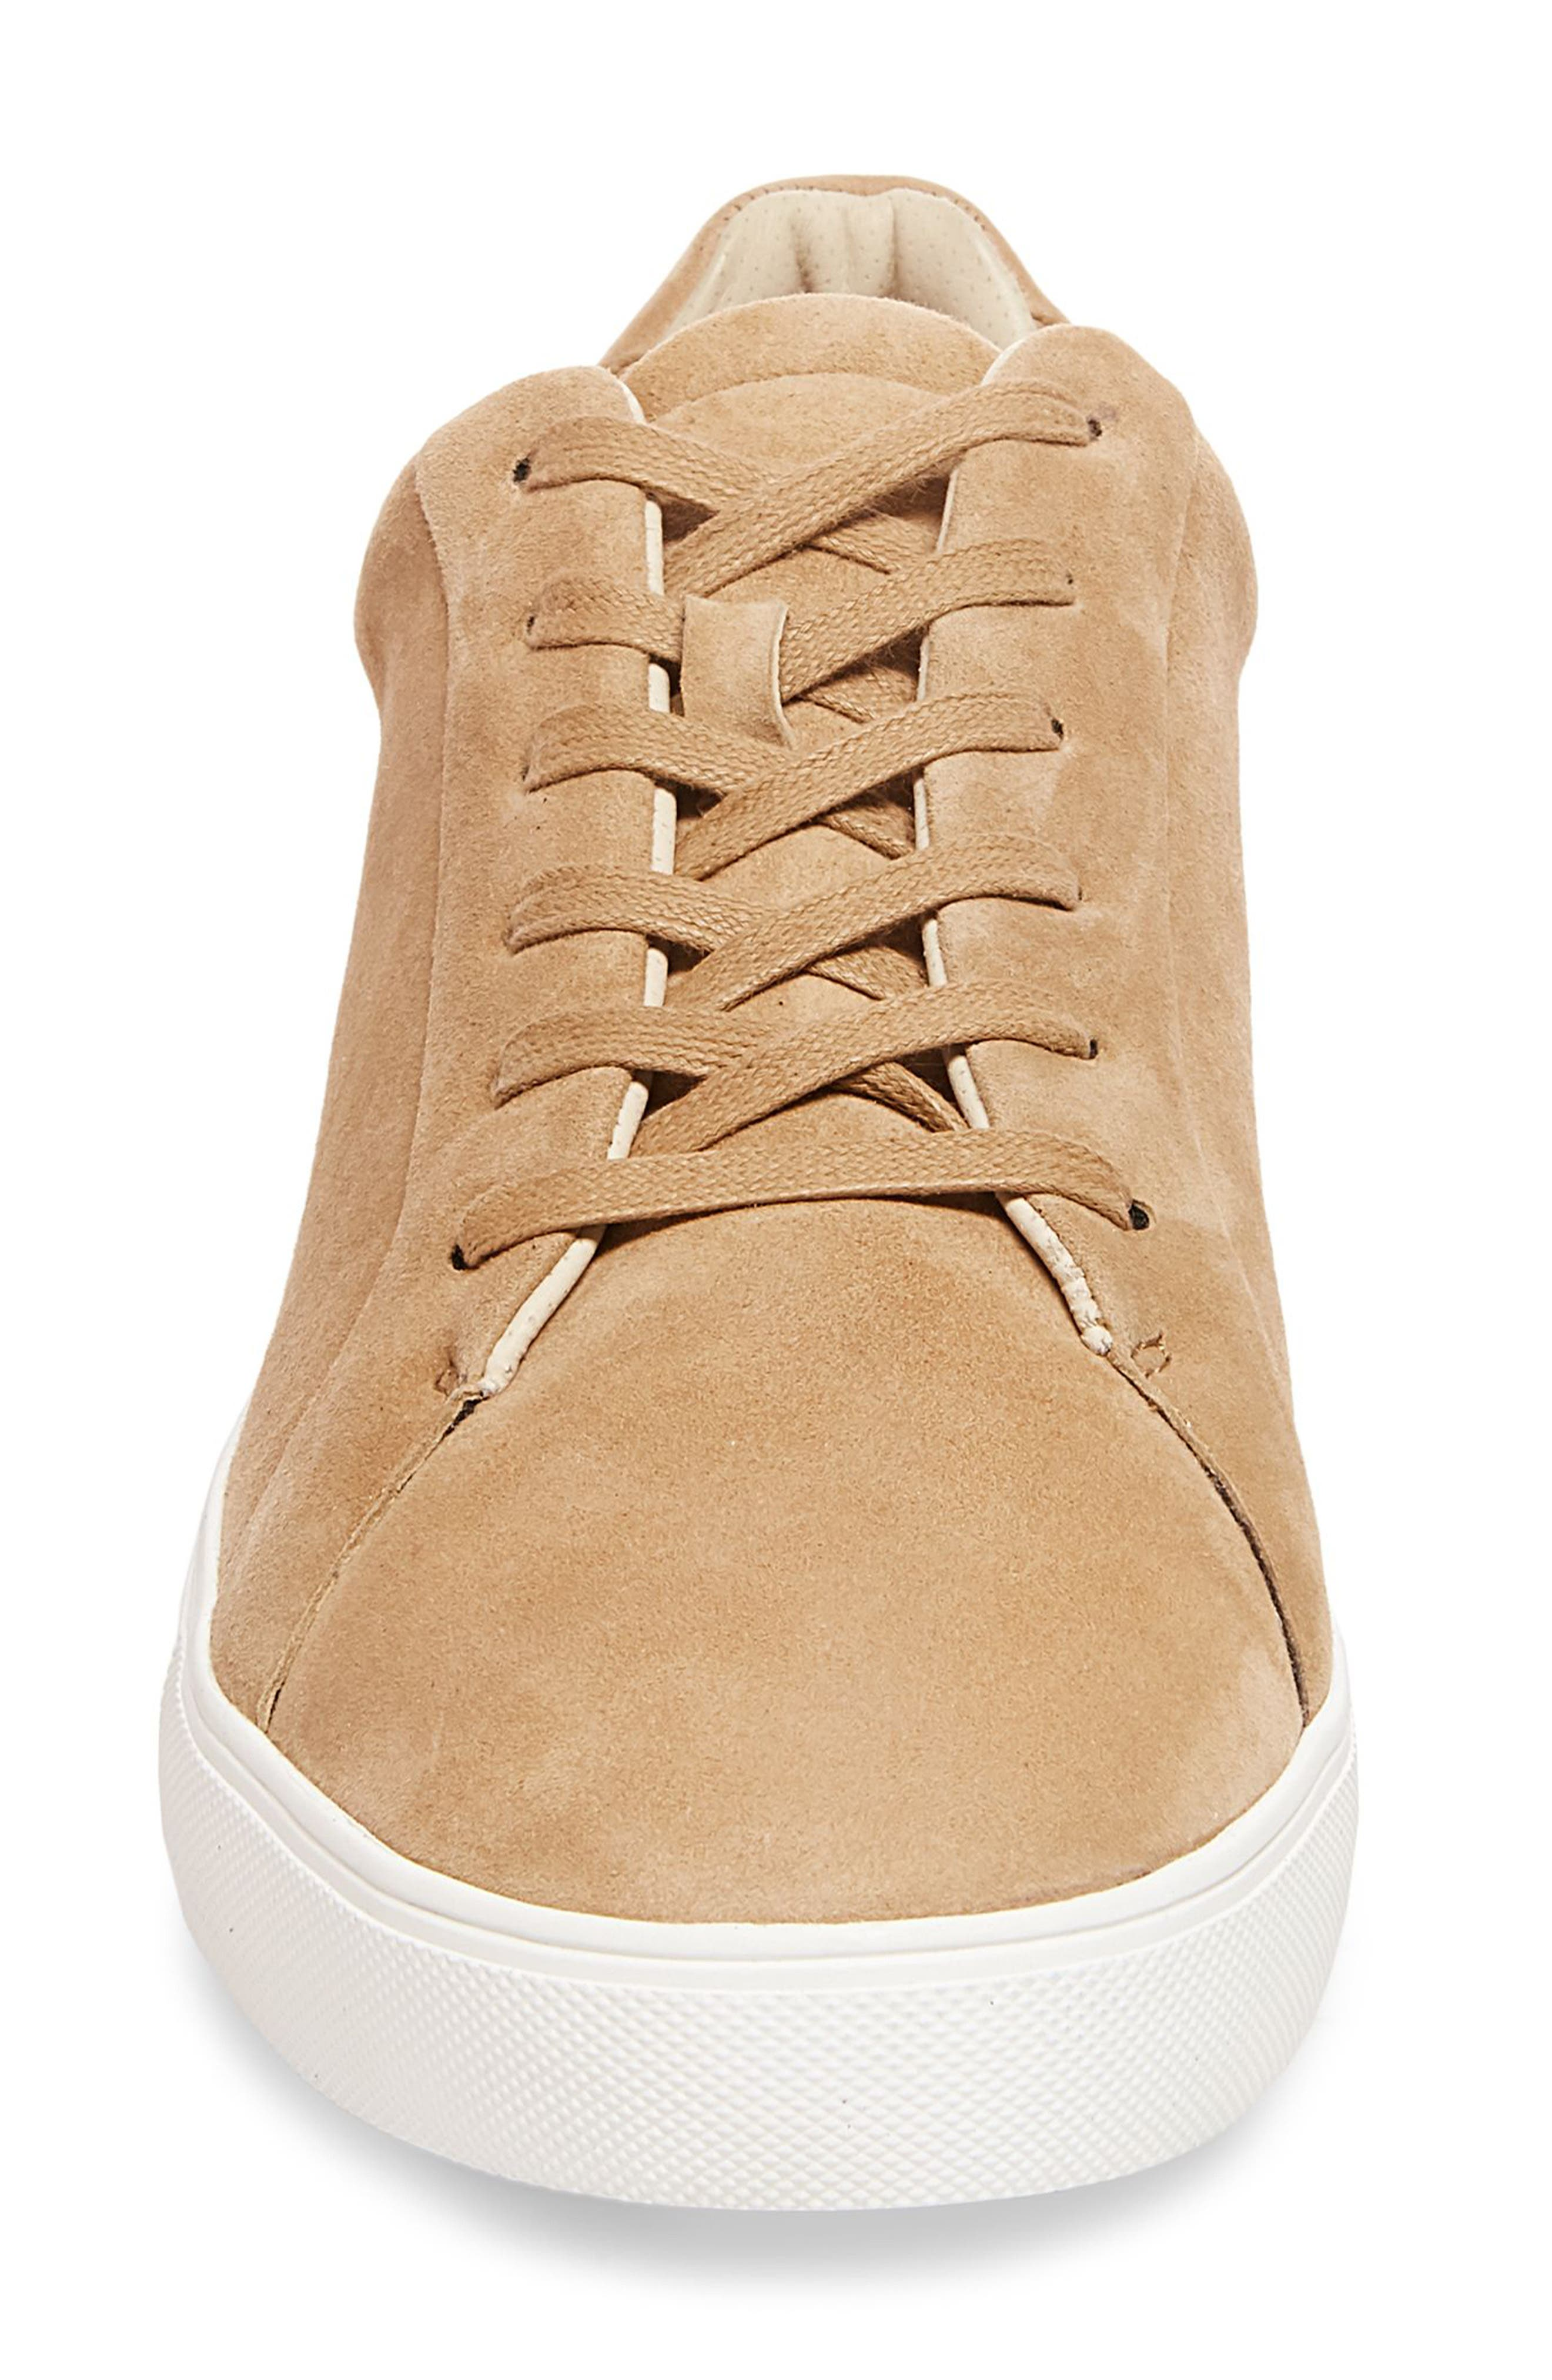 x GQ James Sneaker,                             Alternate thumbnail 4, color,                             Tan Suede